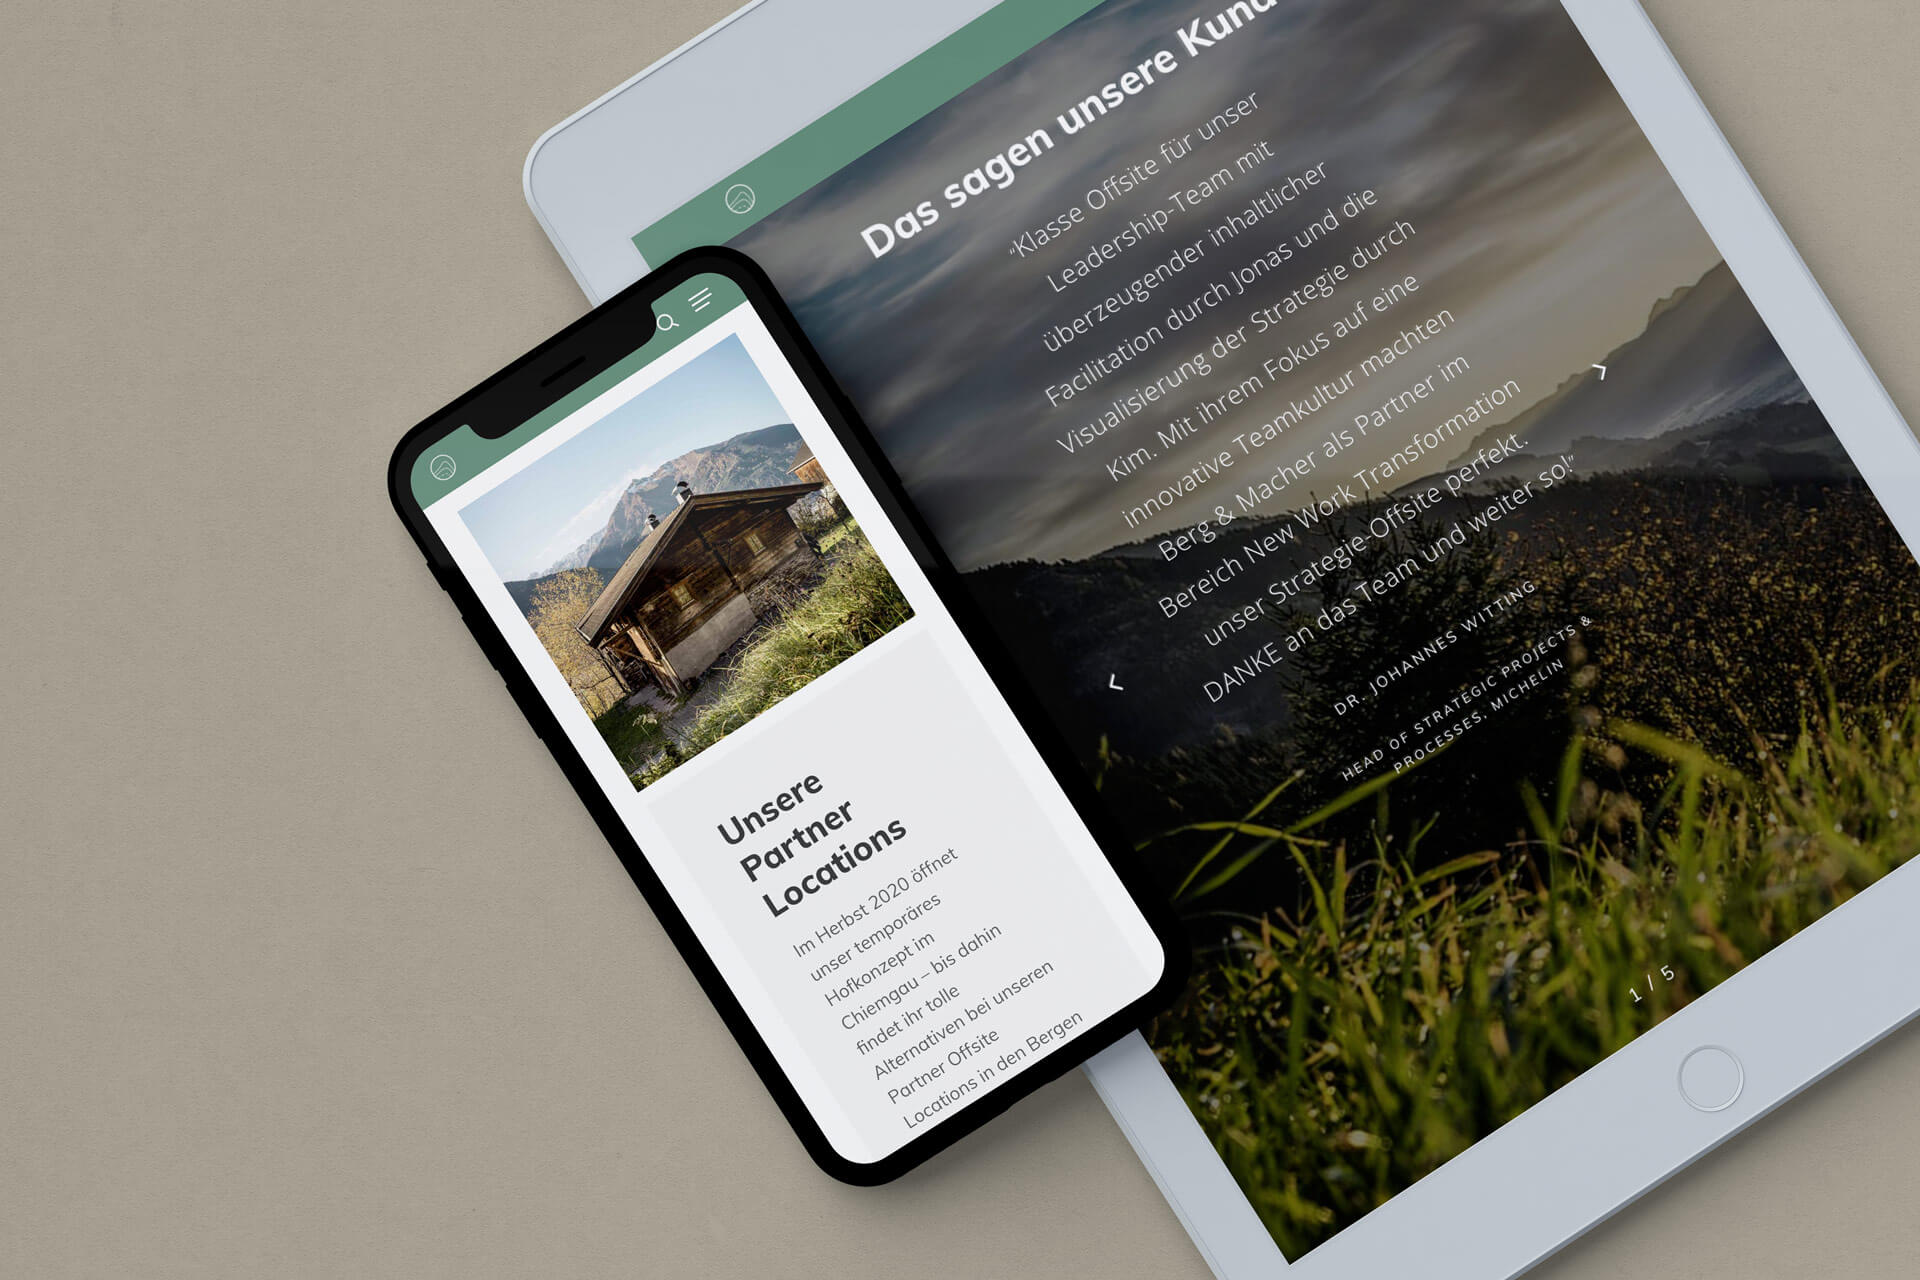 Mockup on iPad and iPhone of the Berg und Macher Page